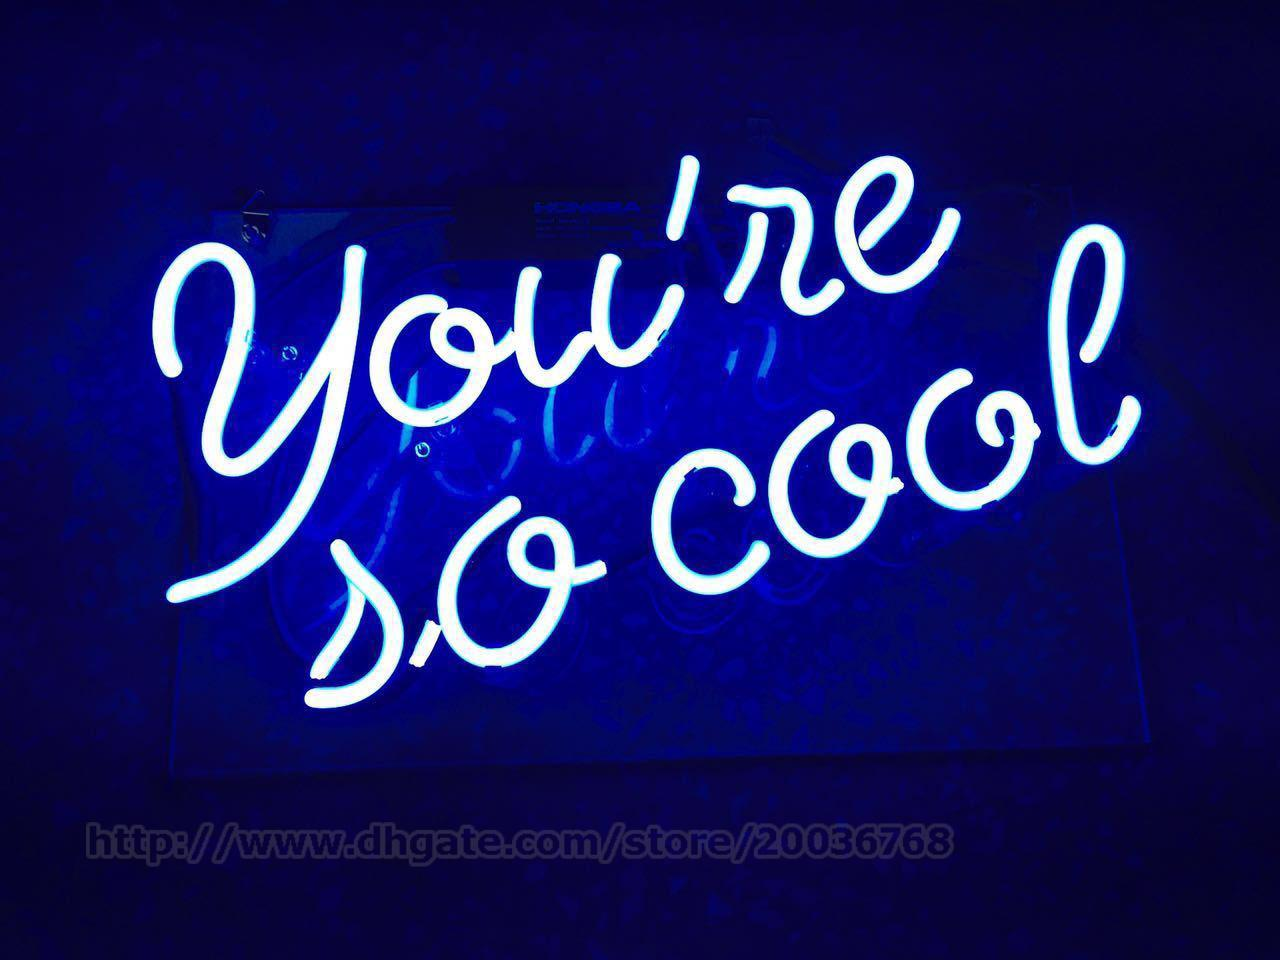 2020 Youre So Cool Neon Sign Home Art Decoration Pub Custom Handcrafted Real Glass Tube Led Neon Signs Advertisement Display 17x8 From Neon Sign 104 21 Dhgate Com